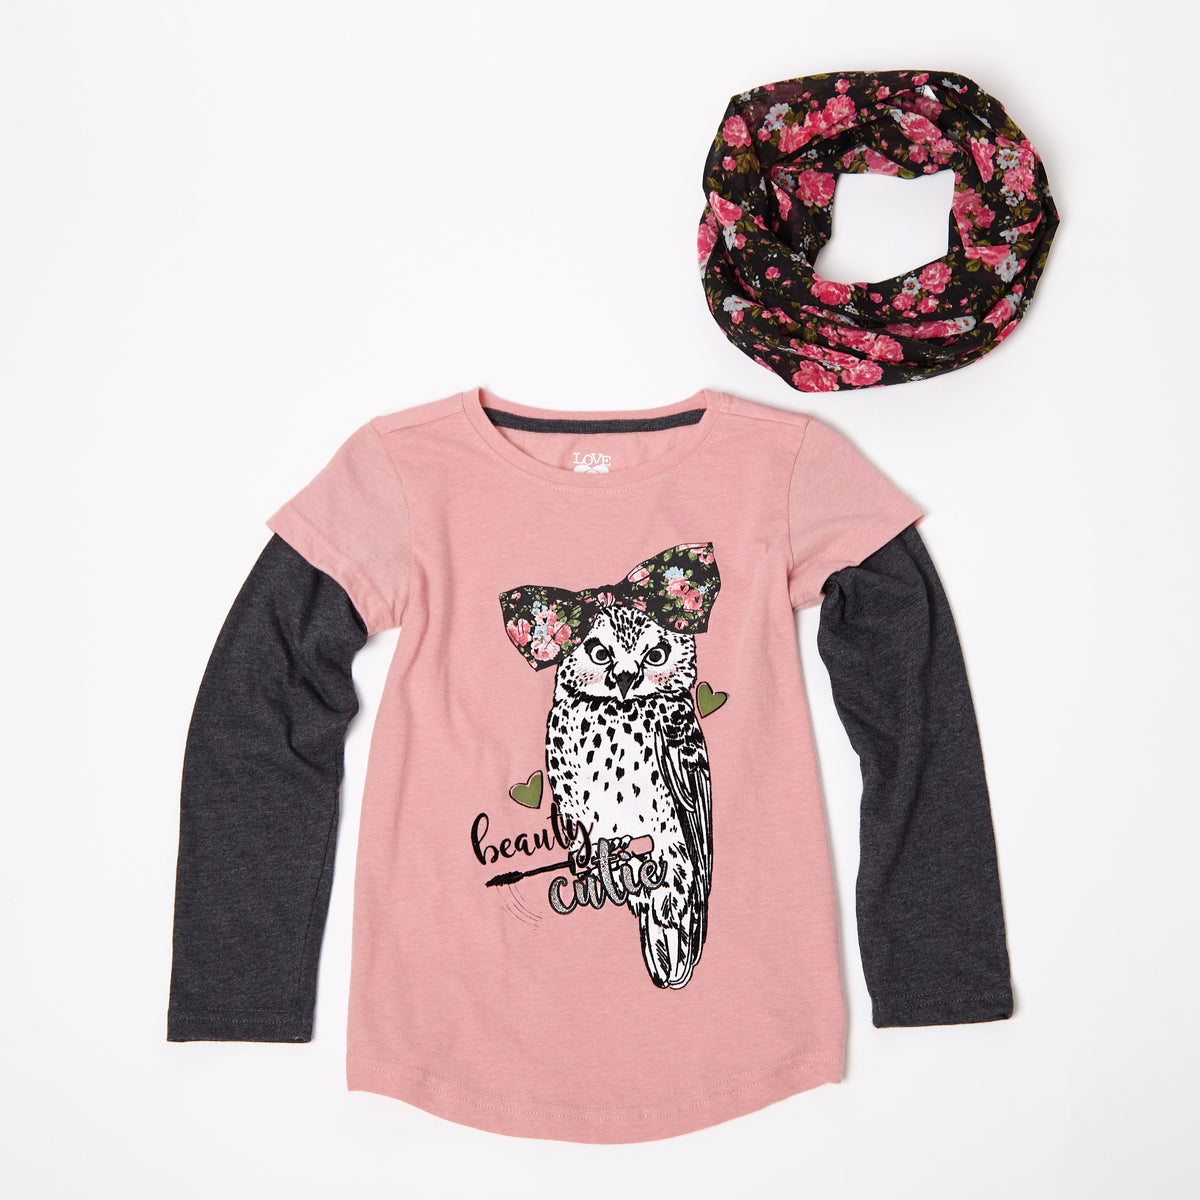 Beauty Cutie Long Sleeve Tee With Scarf